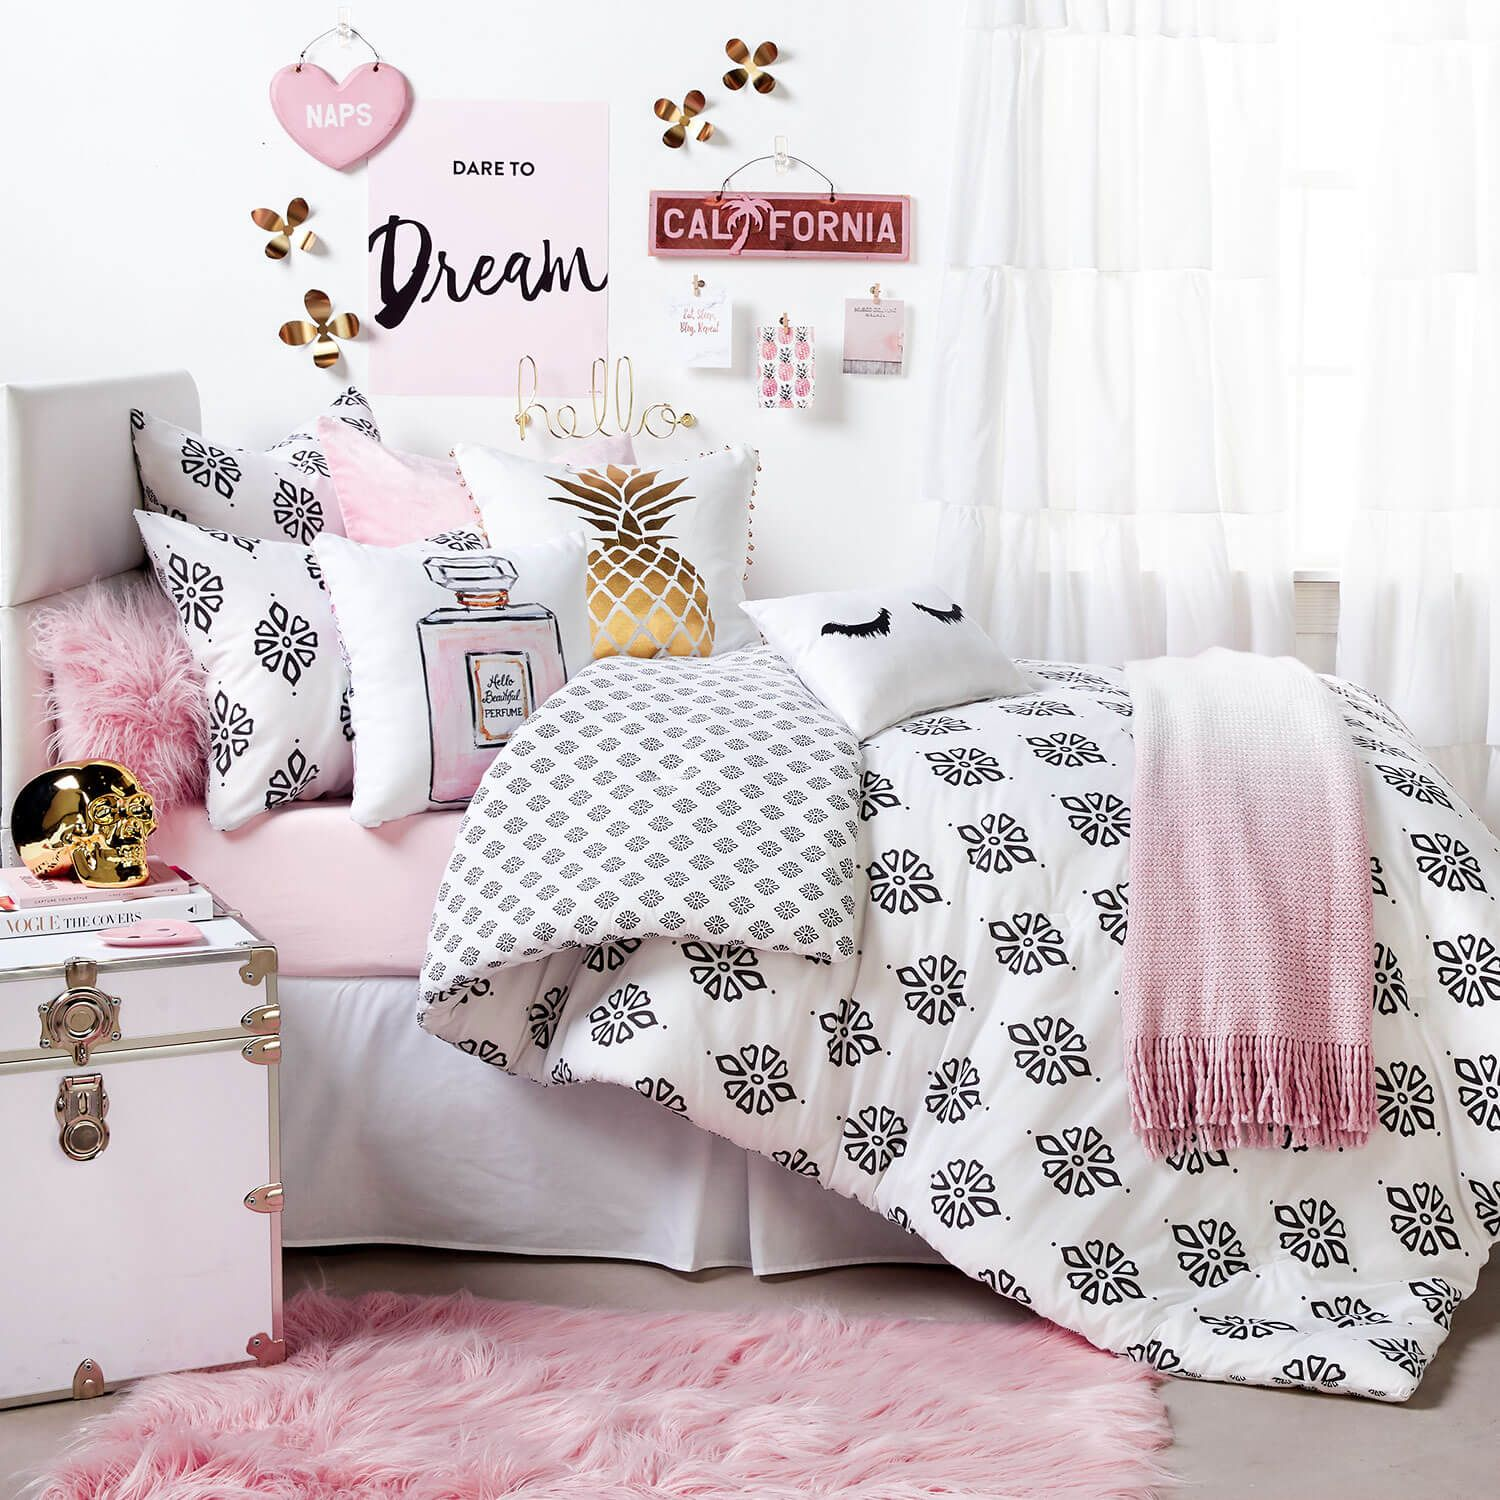 Hello Gorgeous Room: Pin On DORMIFY ESSENTIALS